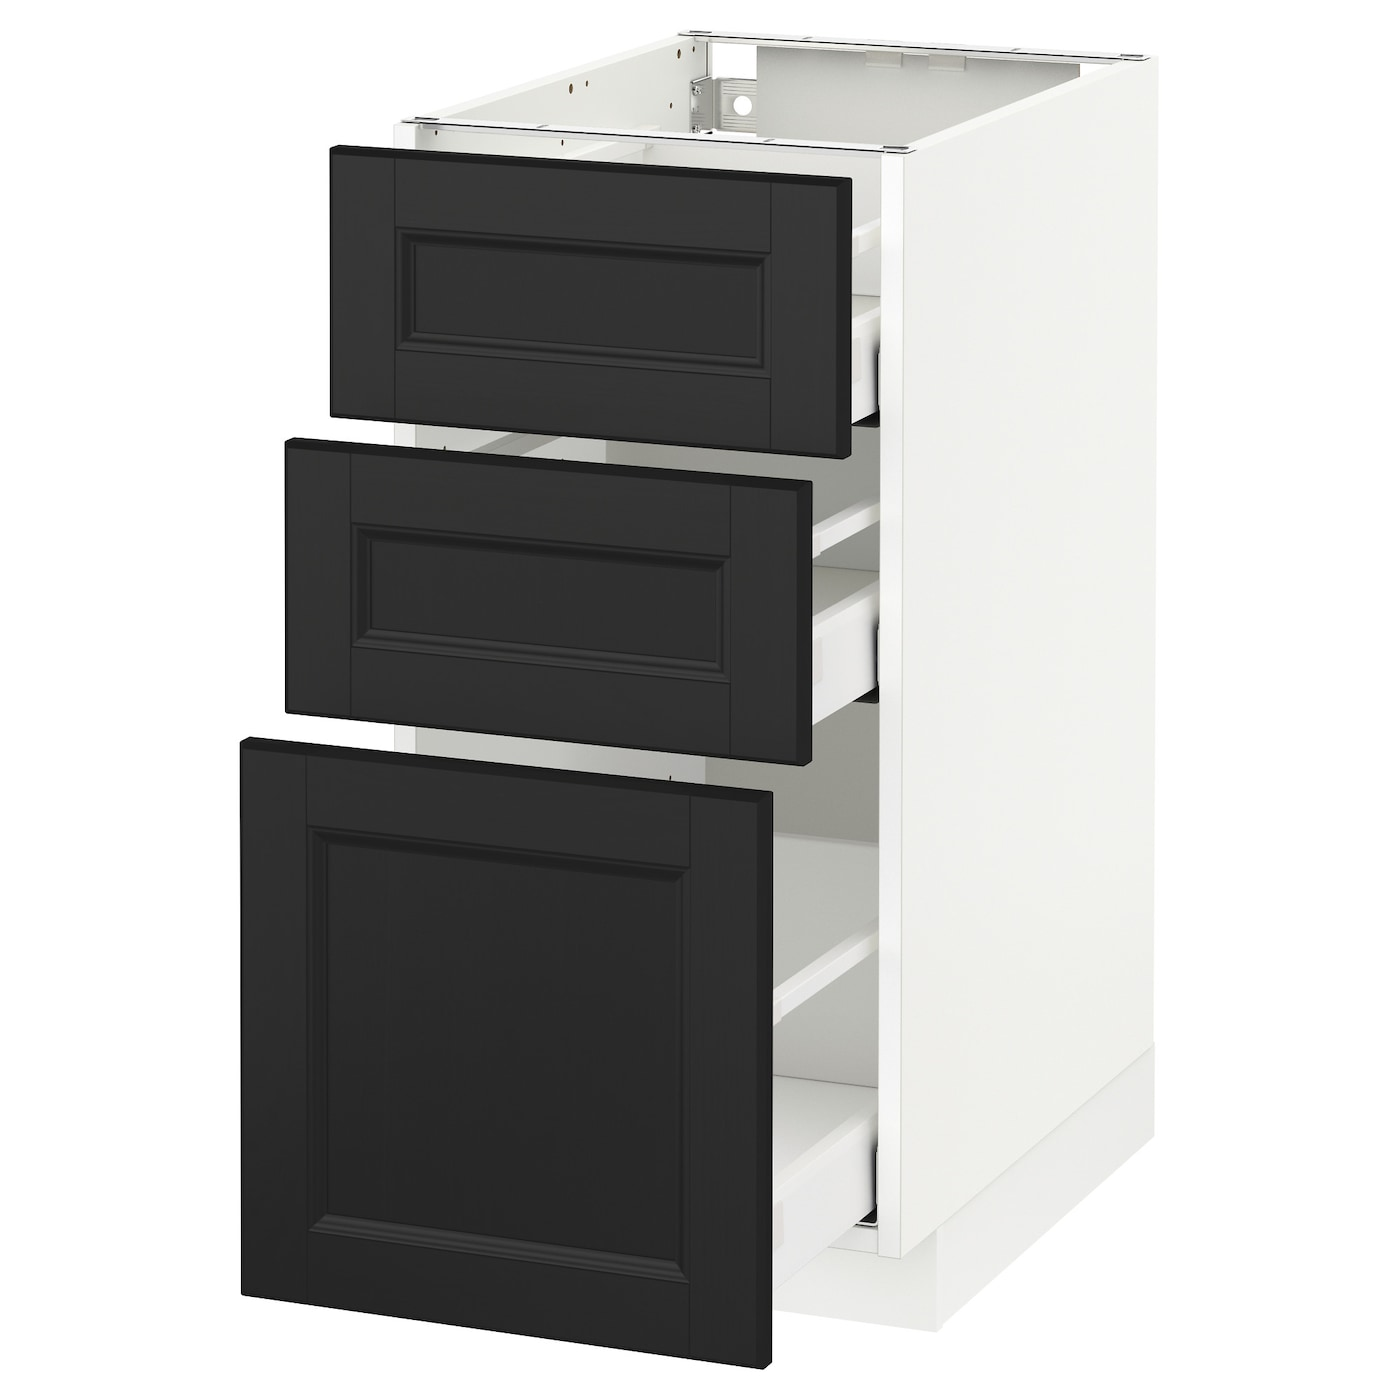 black kitchen base cabinets metod maximera base cabinet with 3 drawers white laxarby 12375